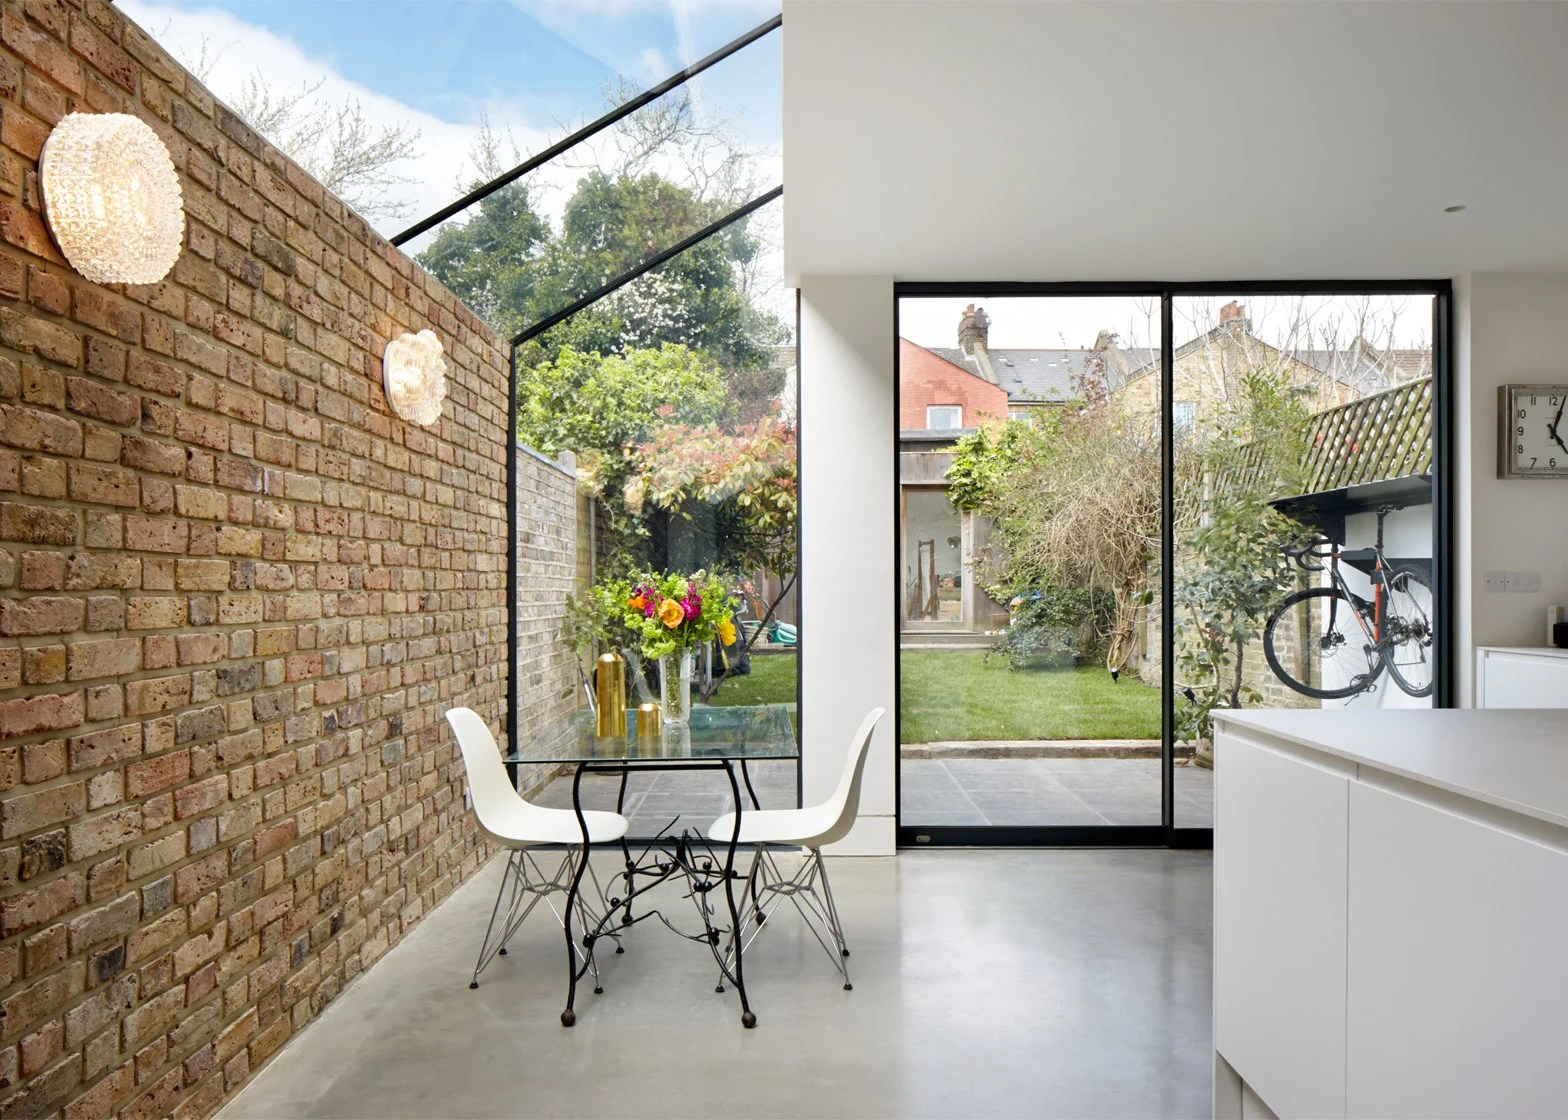 Glass Roof Extension Rise Design Studio Adds Glass Extension To London House